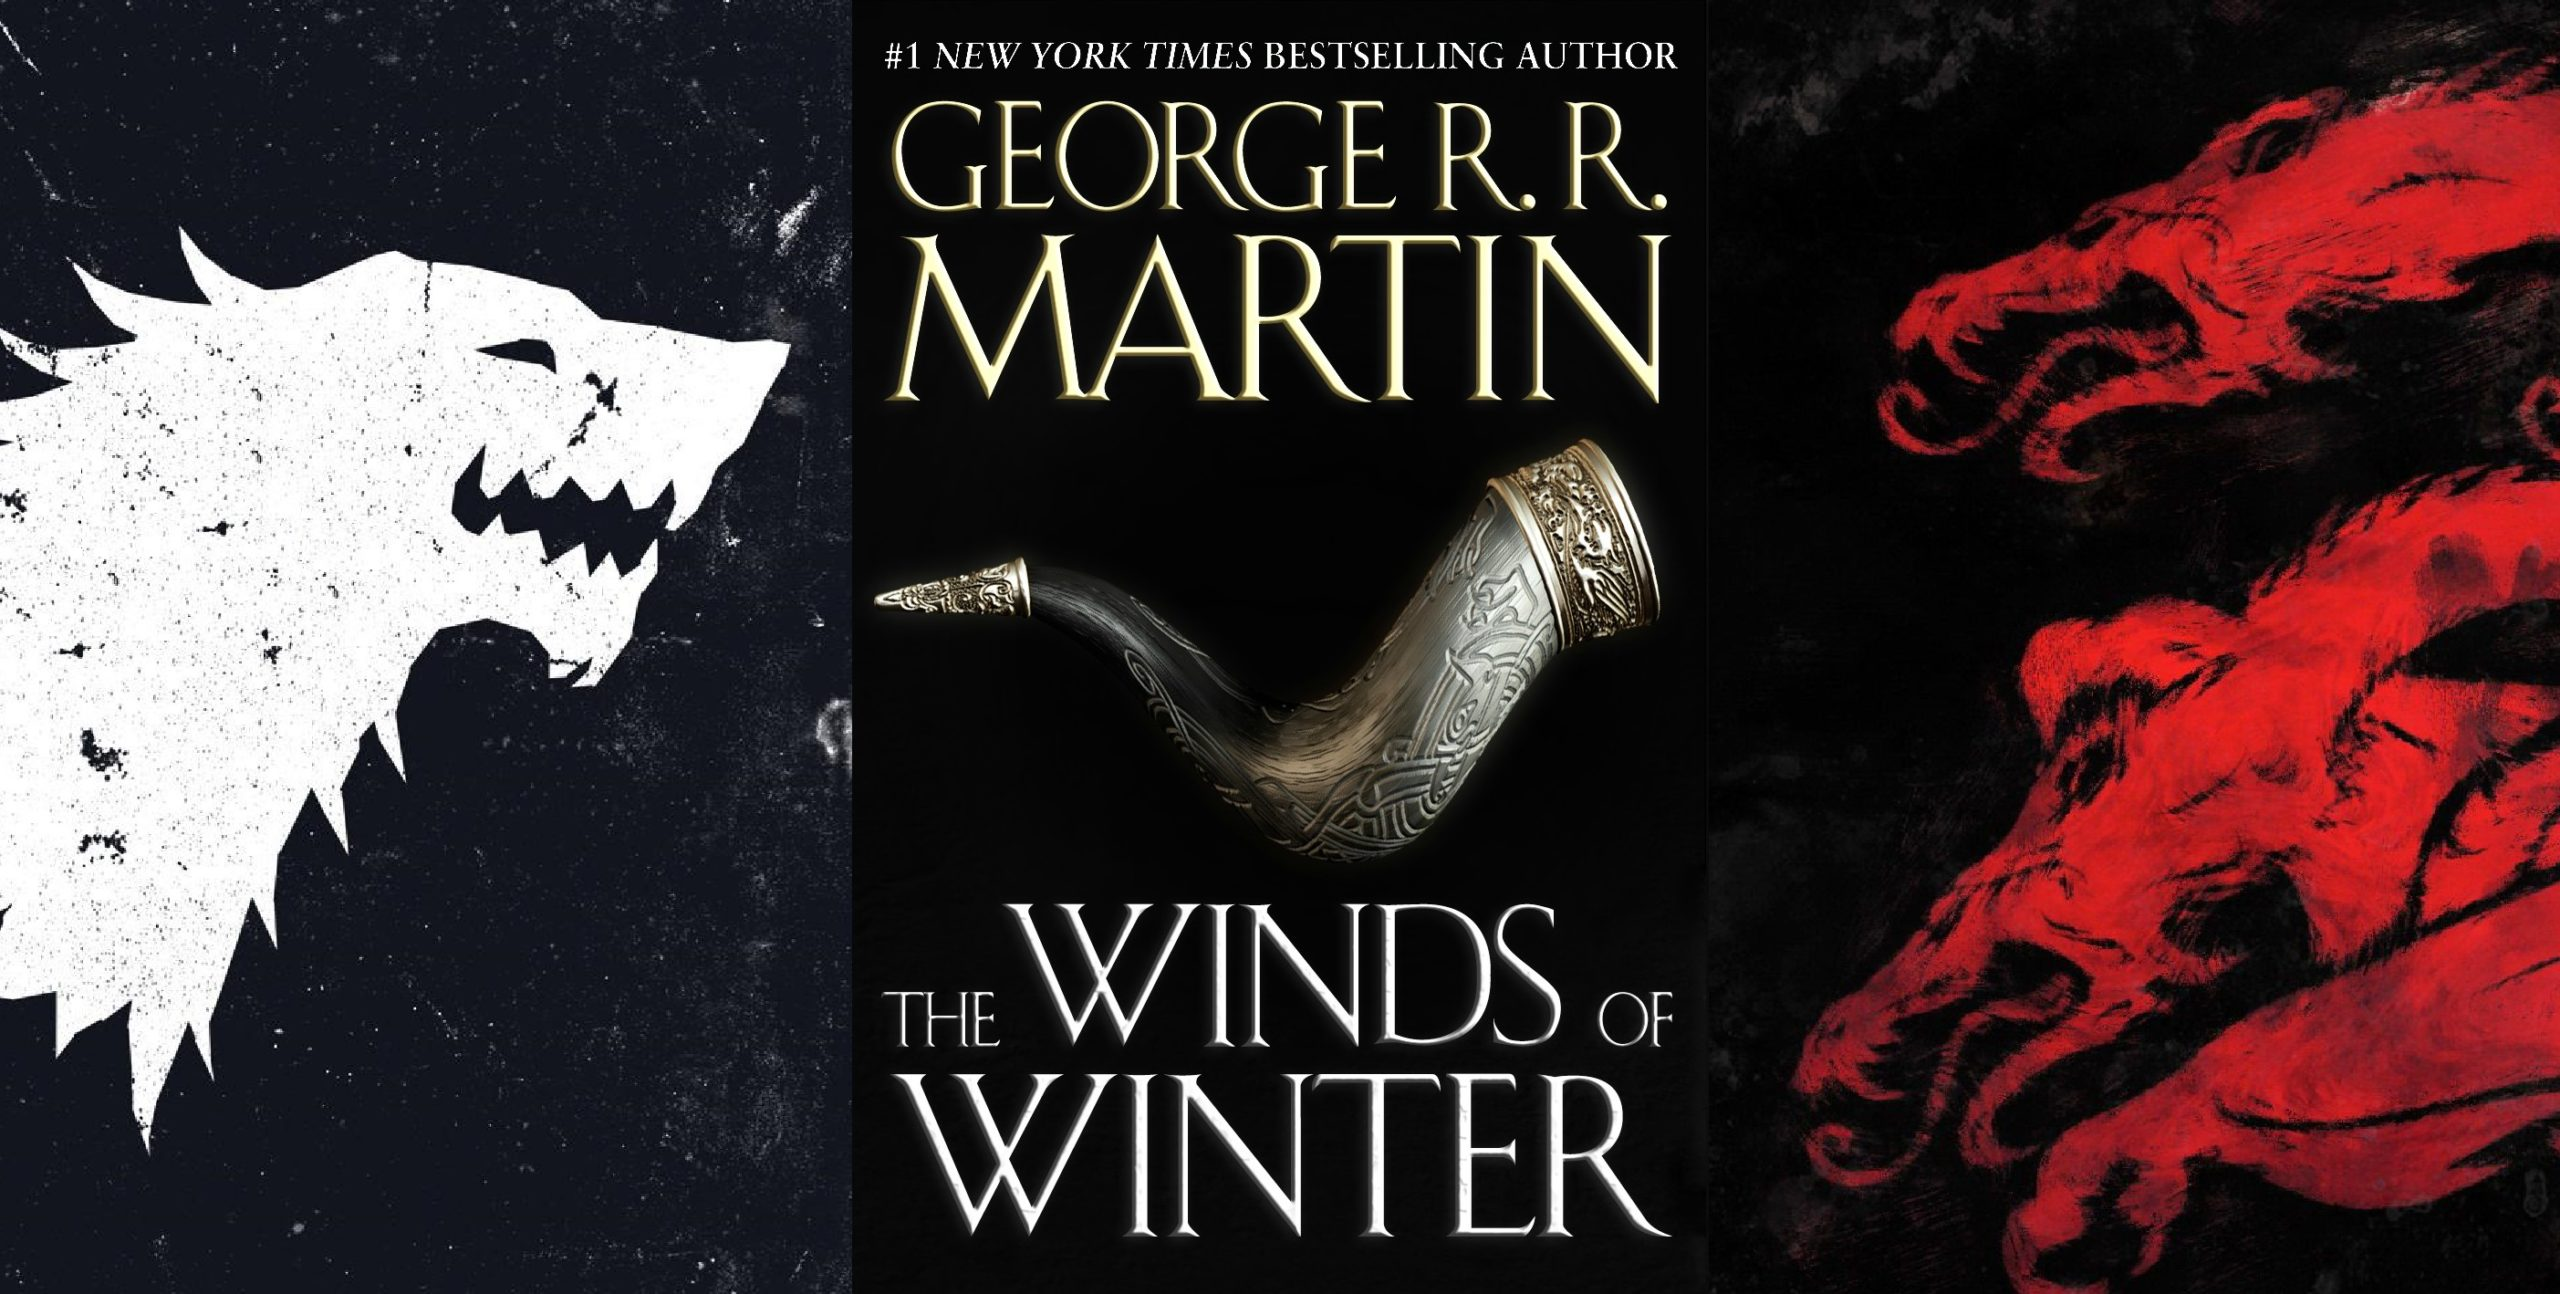 George RR Martin on The Winds of Winter Release Date